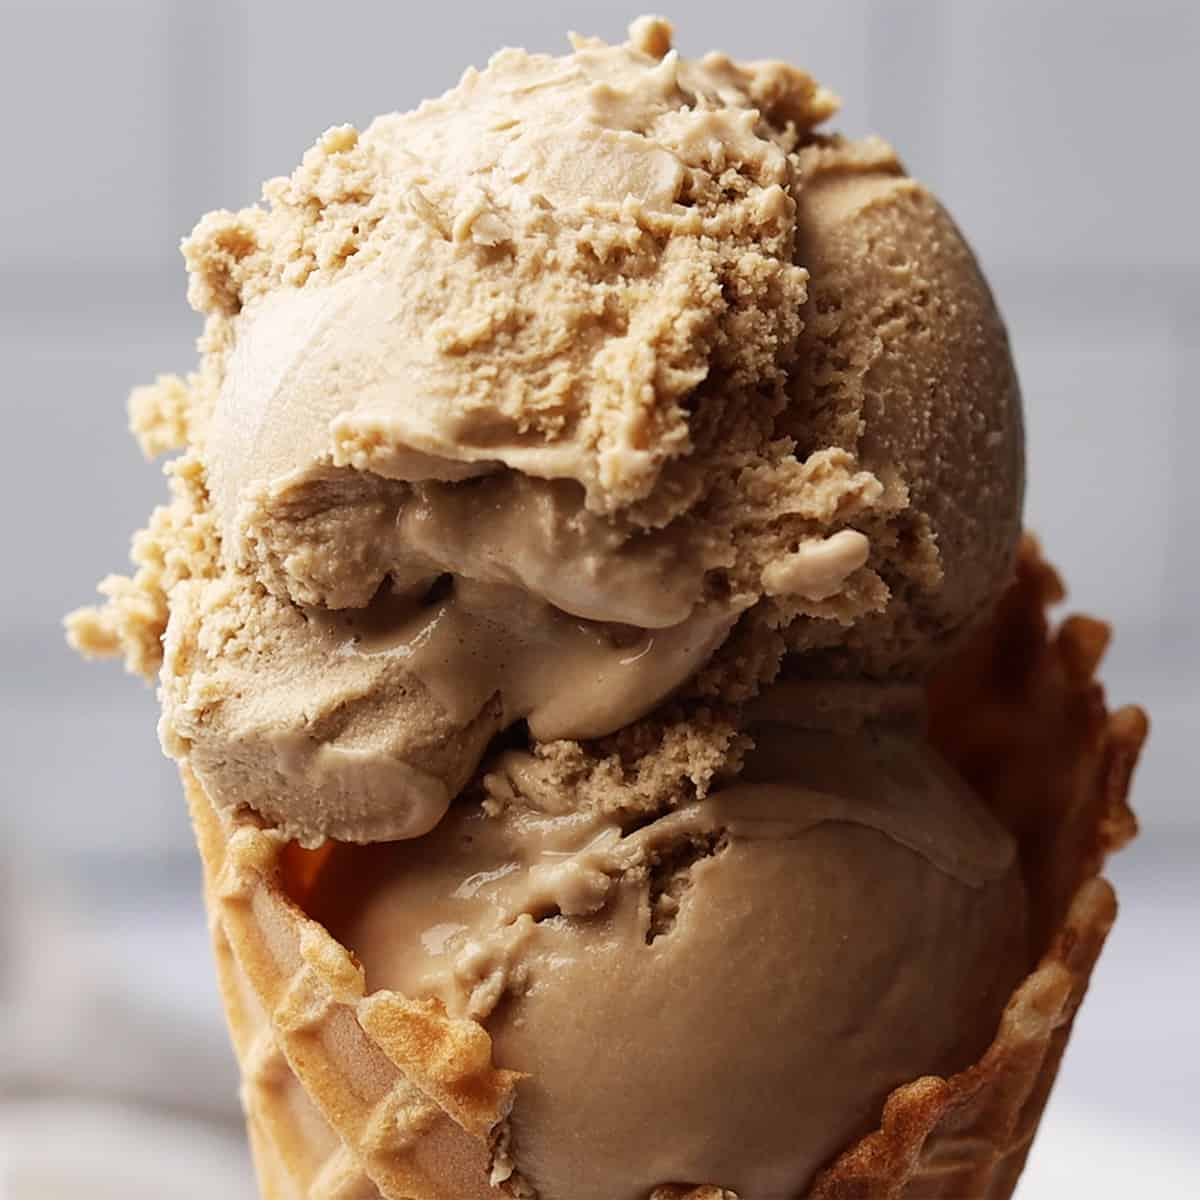 up close photo of two scoops of Coffee Ice Cream in a waffle cone